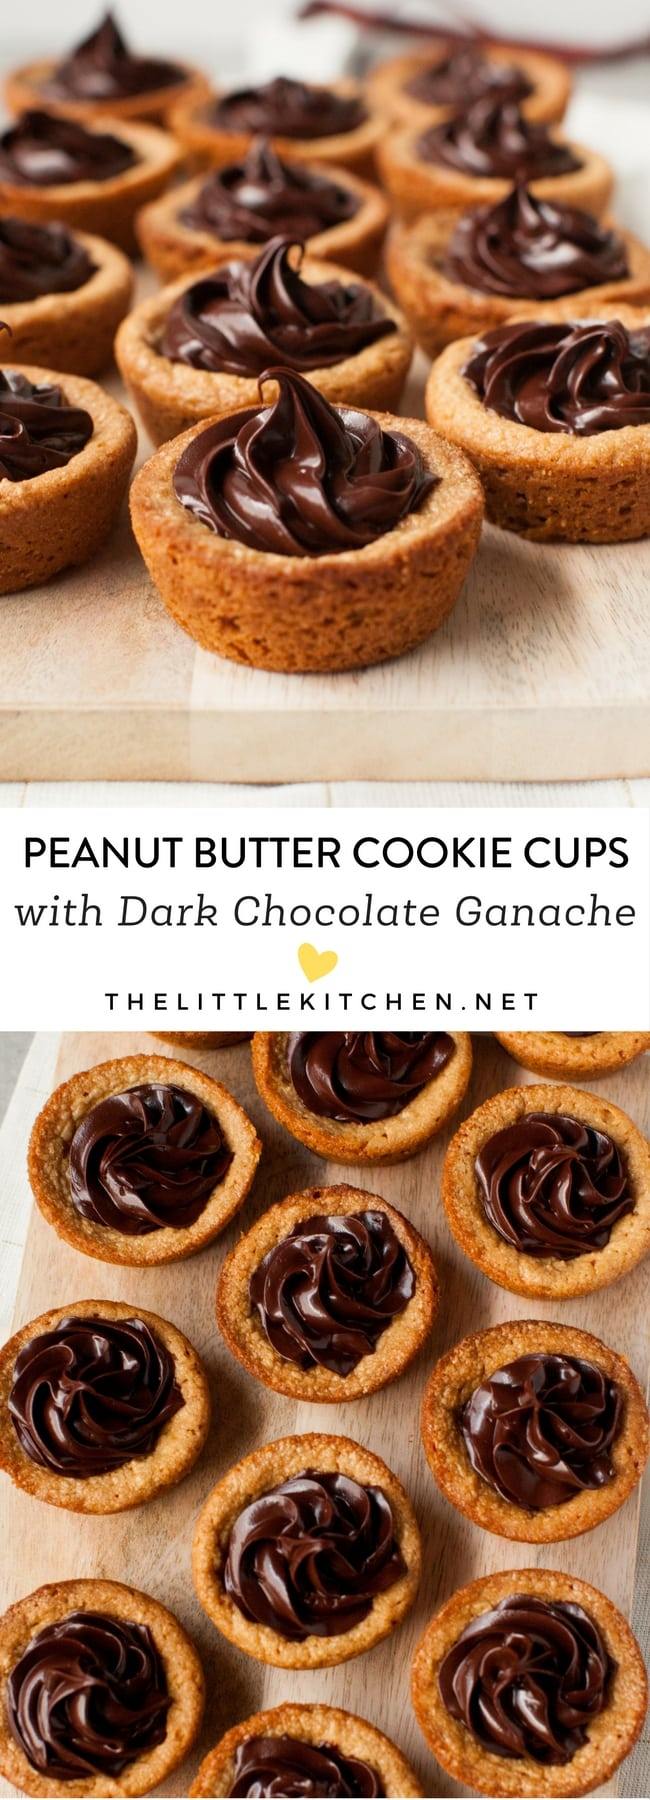 Peanut Butter Cookie Cups with Dark Chocolate Ganache from thelittlekitchen.net